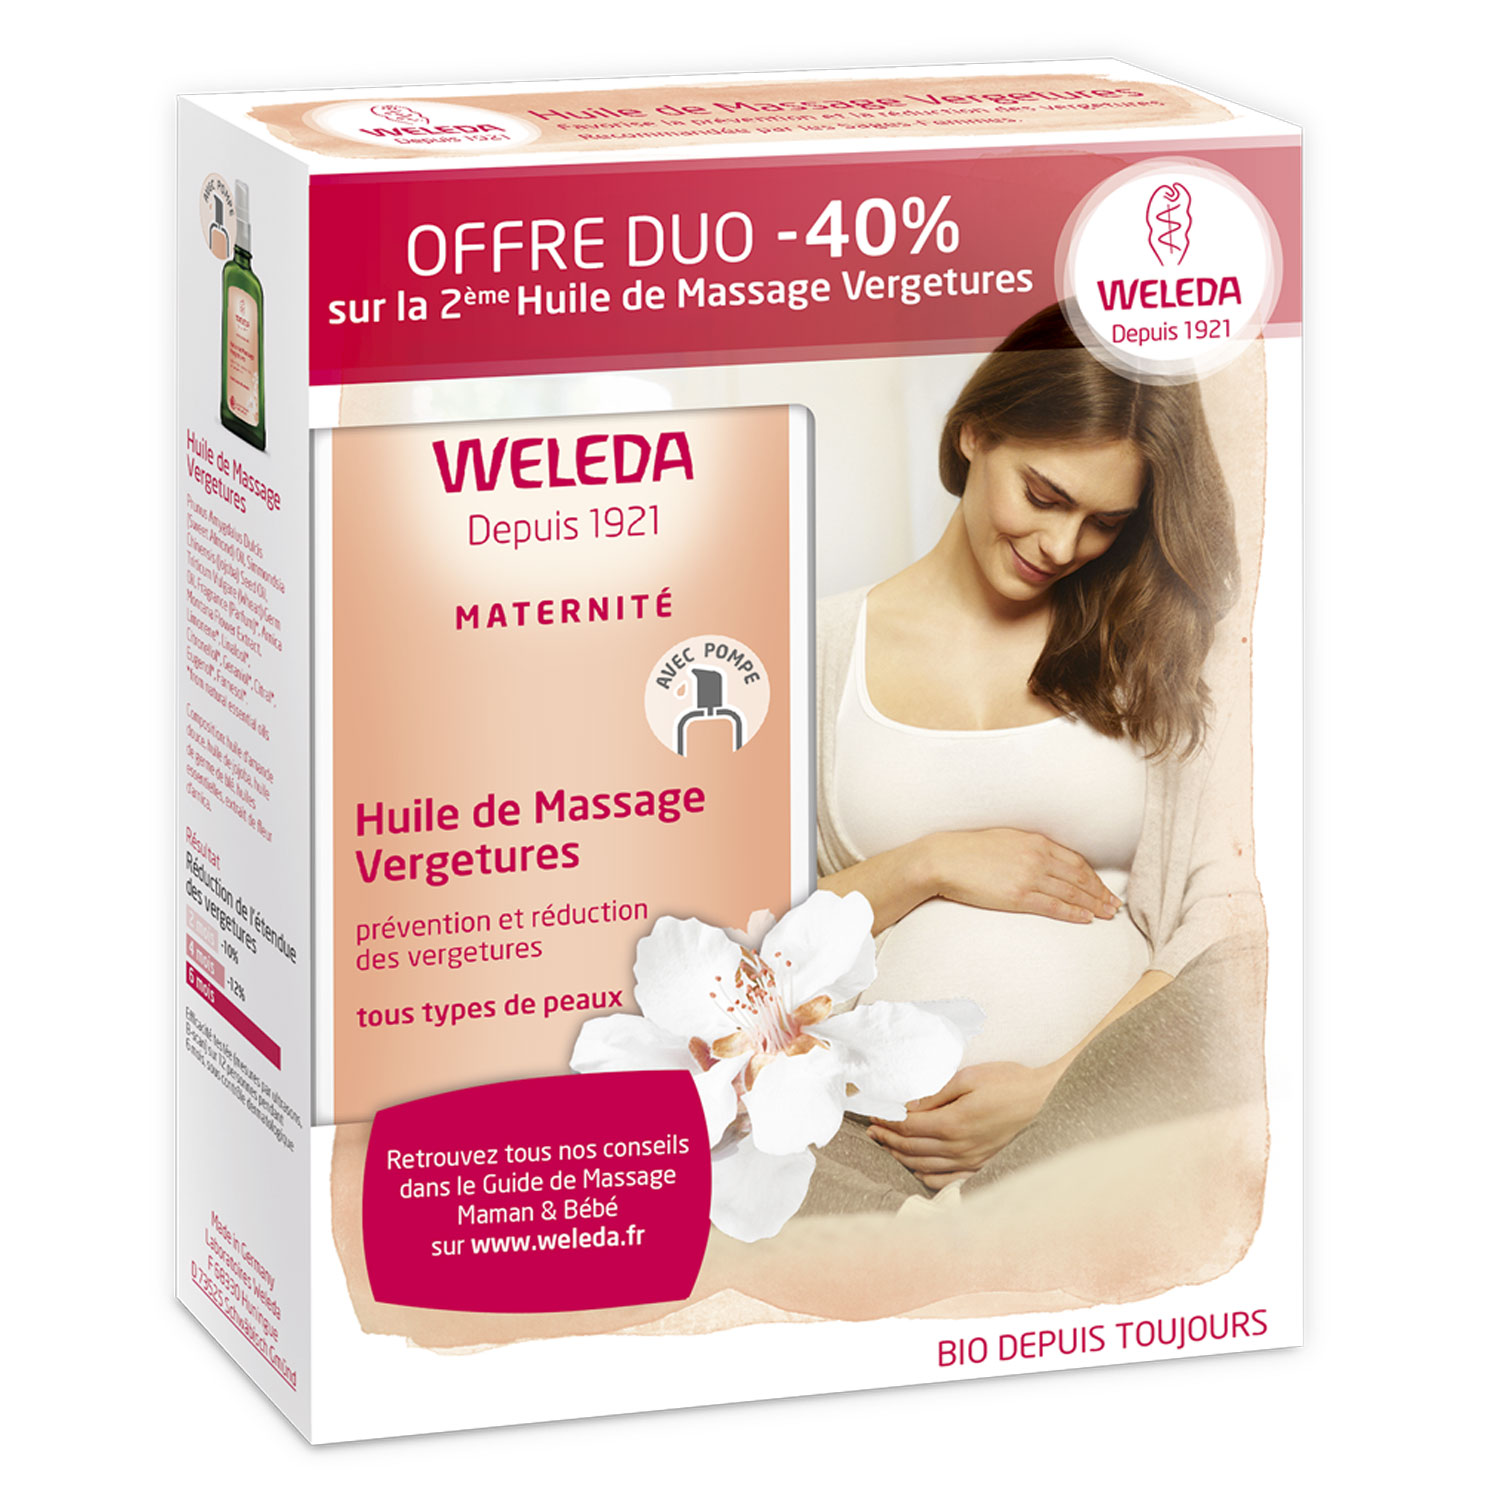 WELEDA Huile de massage vergetures lot de 2 flacons de 100ml - Illustration n°2